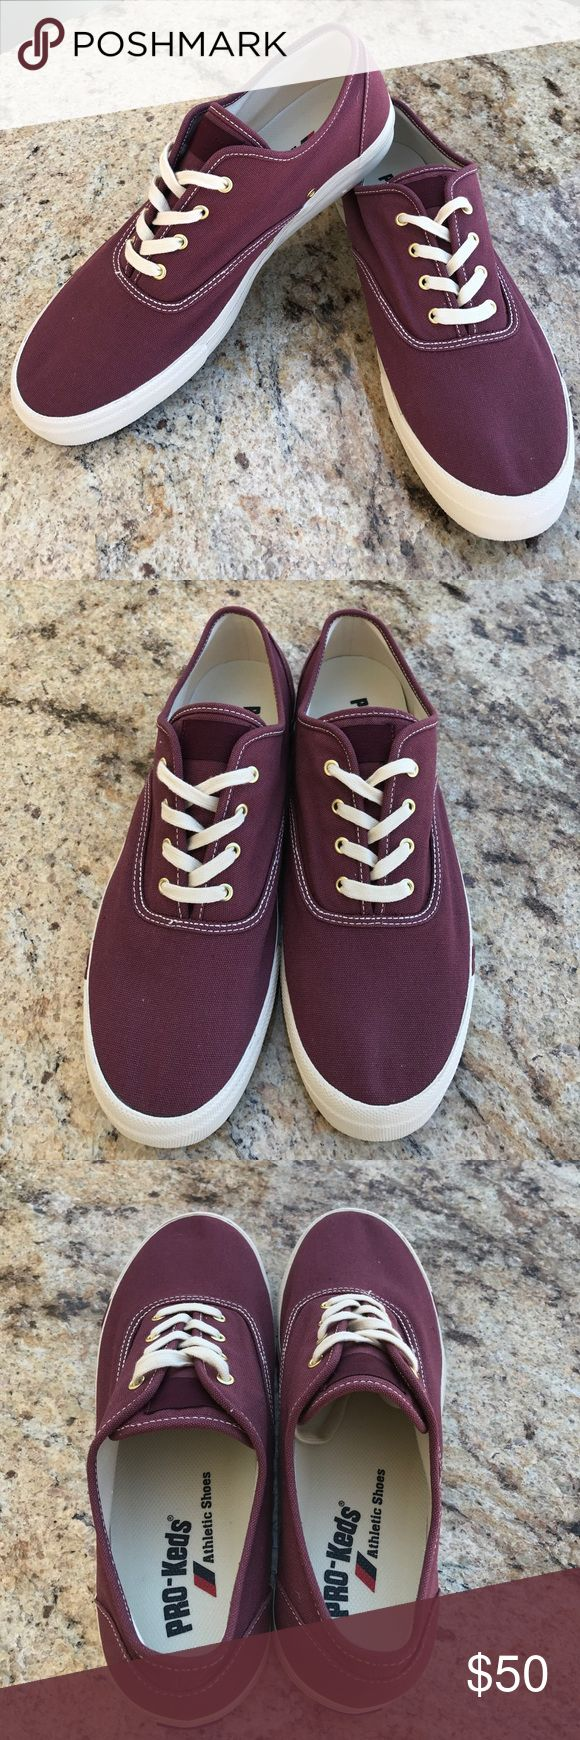 👞👟Athletic Pro-Keds Shoes👟👞 NWOT, In Excellent Condition,No Scuffes,Scratches Or Anything Just Need Someone To Wear Them With Style!!!😃😃😜😎😎 Pro-Keds Shoes Athletic Shoes